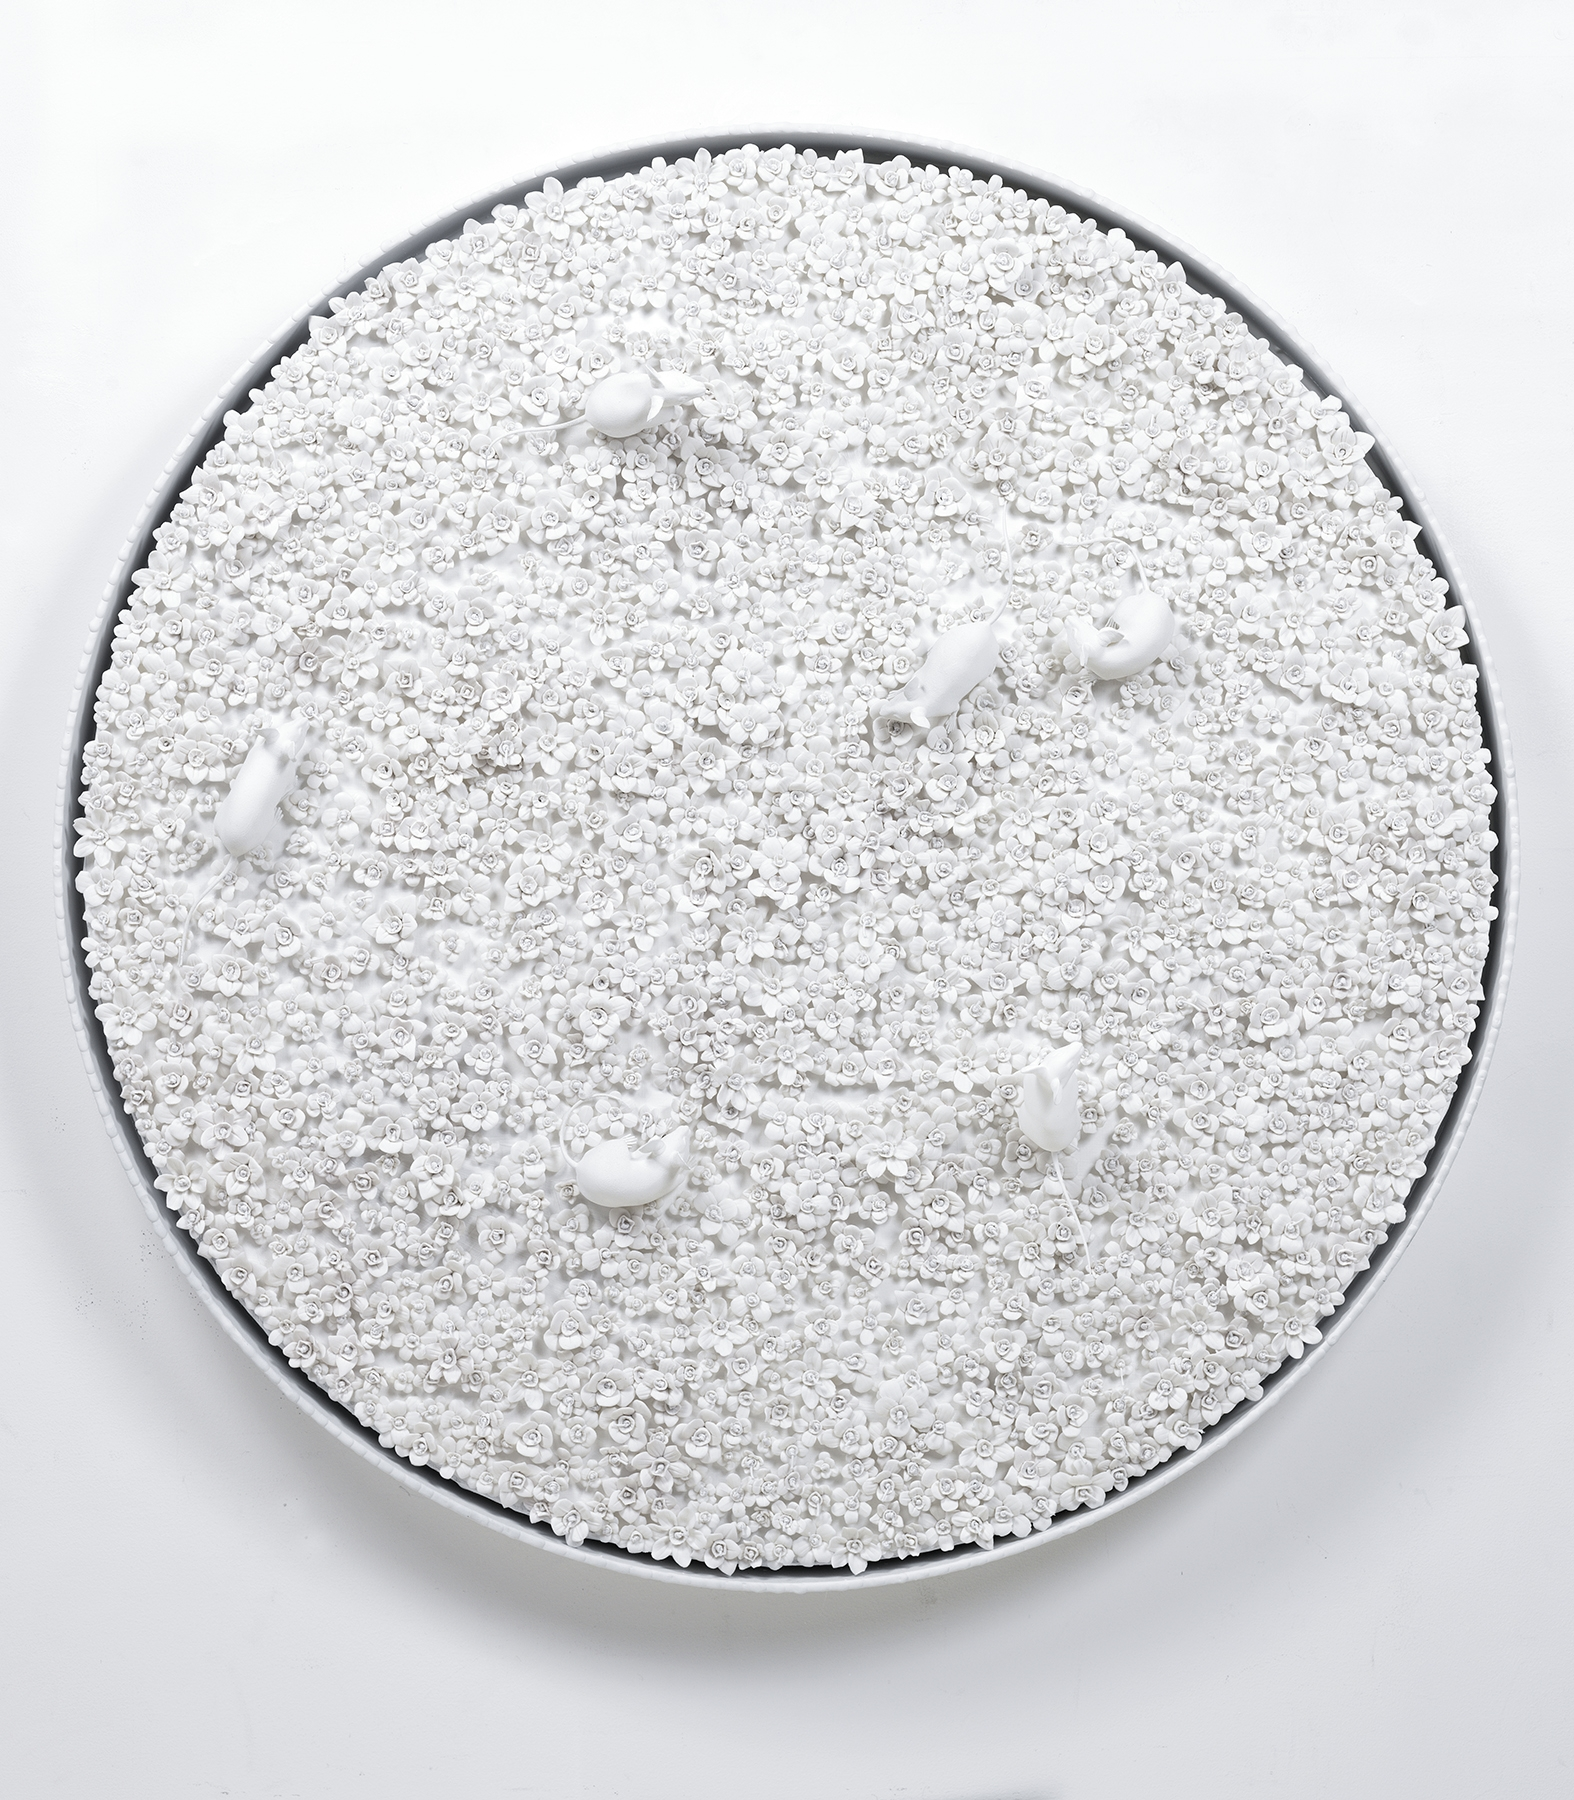 White Narcissus Panel with Mice D , 2014  Porcelain, linen, acrylic, nylon, waxed cotton in artist's frame  42 inches diameter